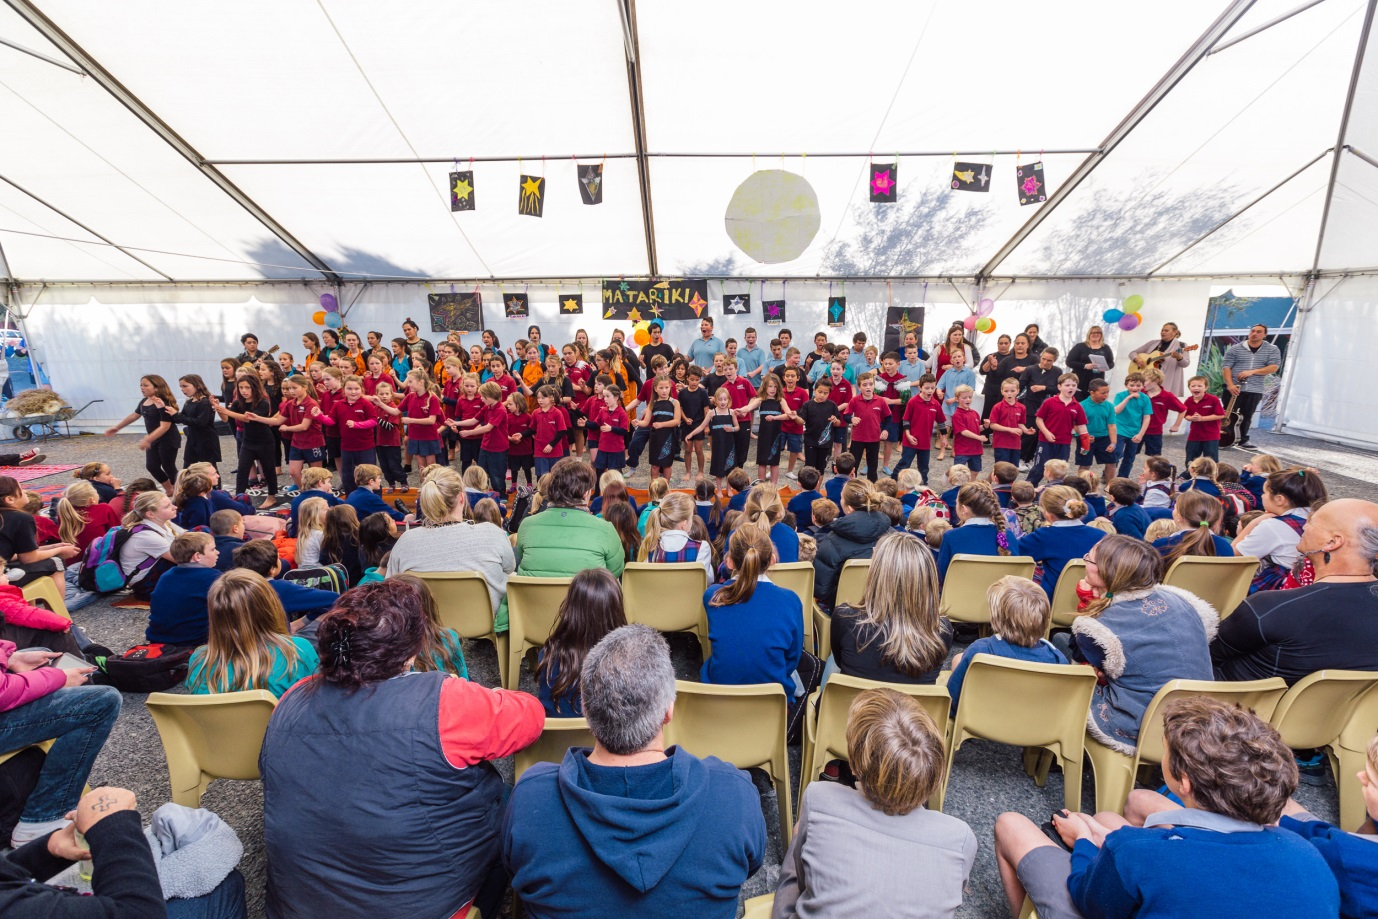 Members of the audience enjoying one of the kapa haka performances. Photo by Andrew Spencer.